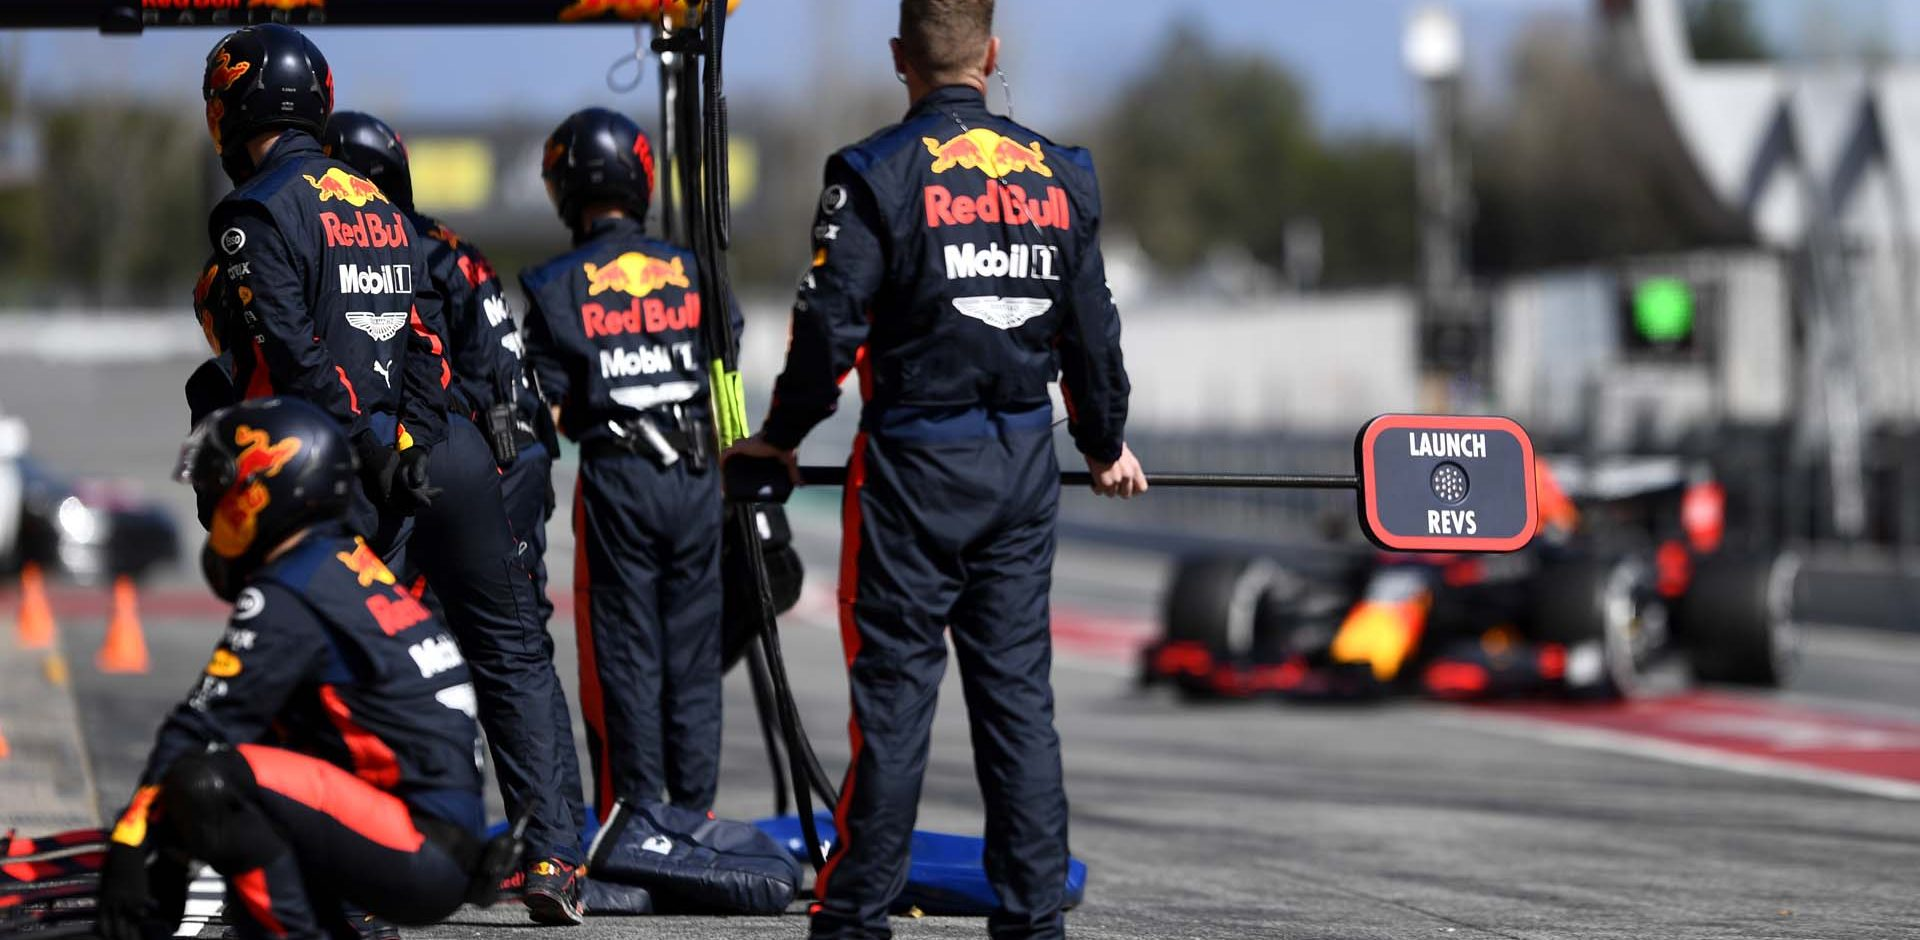 BARCELONA, SPAIN - FEBRUARY 27: The Red Bull Racing team prepare for a pit stop during Day Two of F1 Winter Testing at Circuit de Barcelona-Catalunya on February 27, 2020 in Barcelona, Spain. (Photo by Rudy Carezzevoli/Getty Images) // Getty Images / Red Bull Content Pool  // AP-2384XX81D1W11 // Usage for editorial use only //